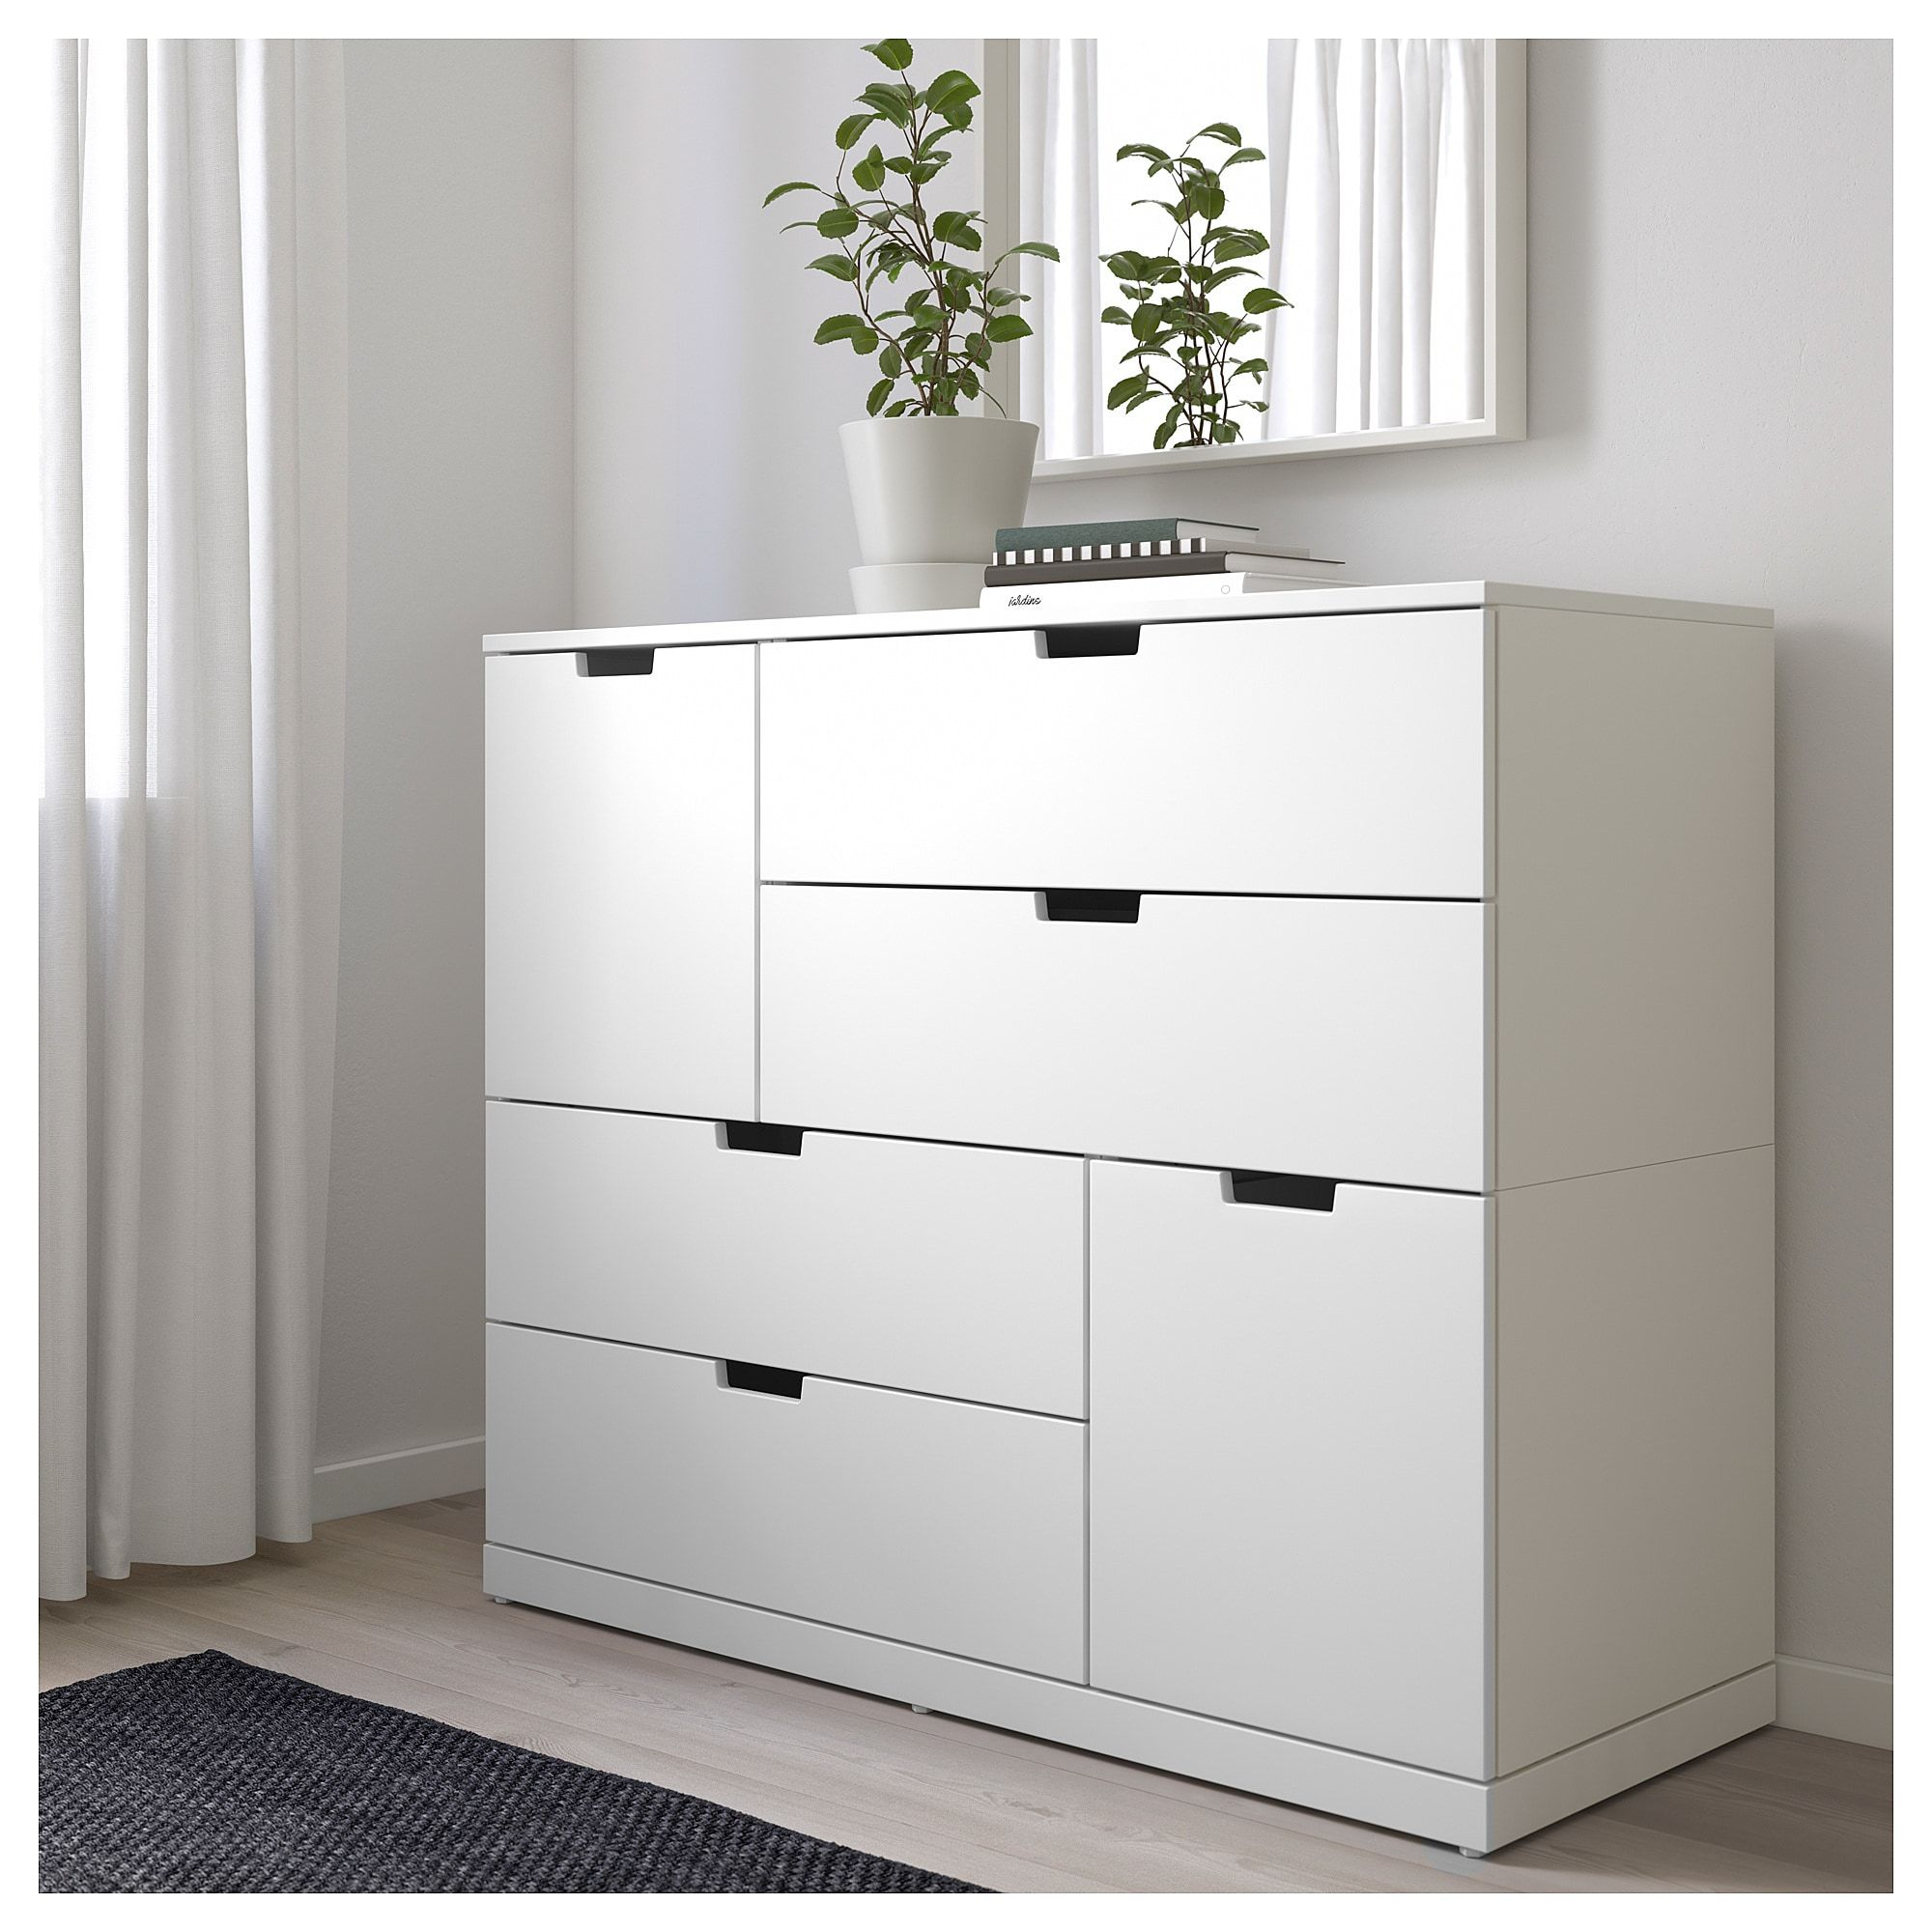 new products 882b9 07381 NORDLI 6-drawer dresser - white | Dresser in 2019 | Drawers ...